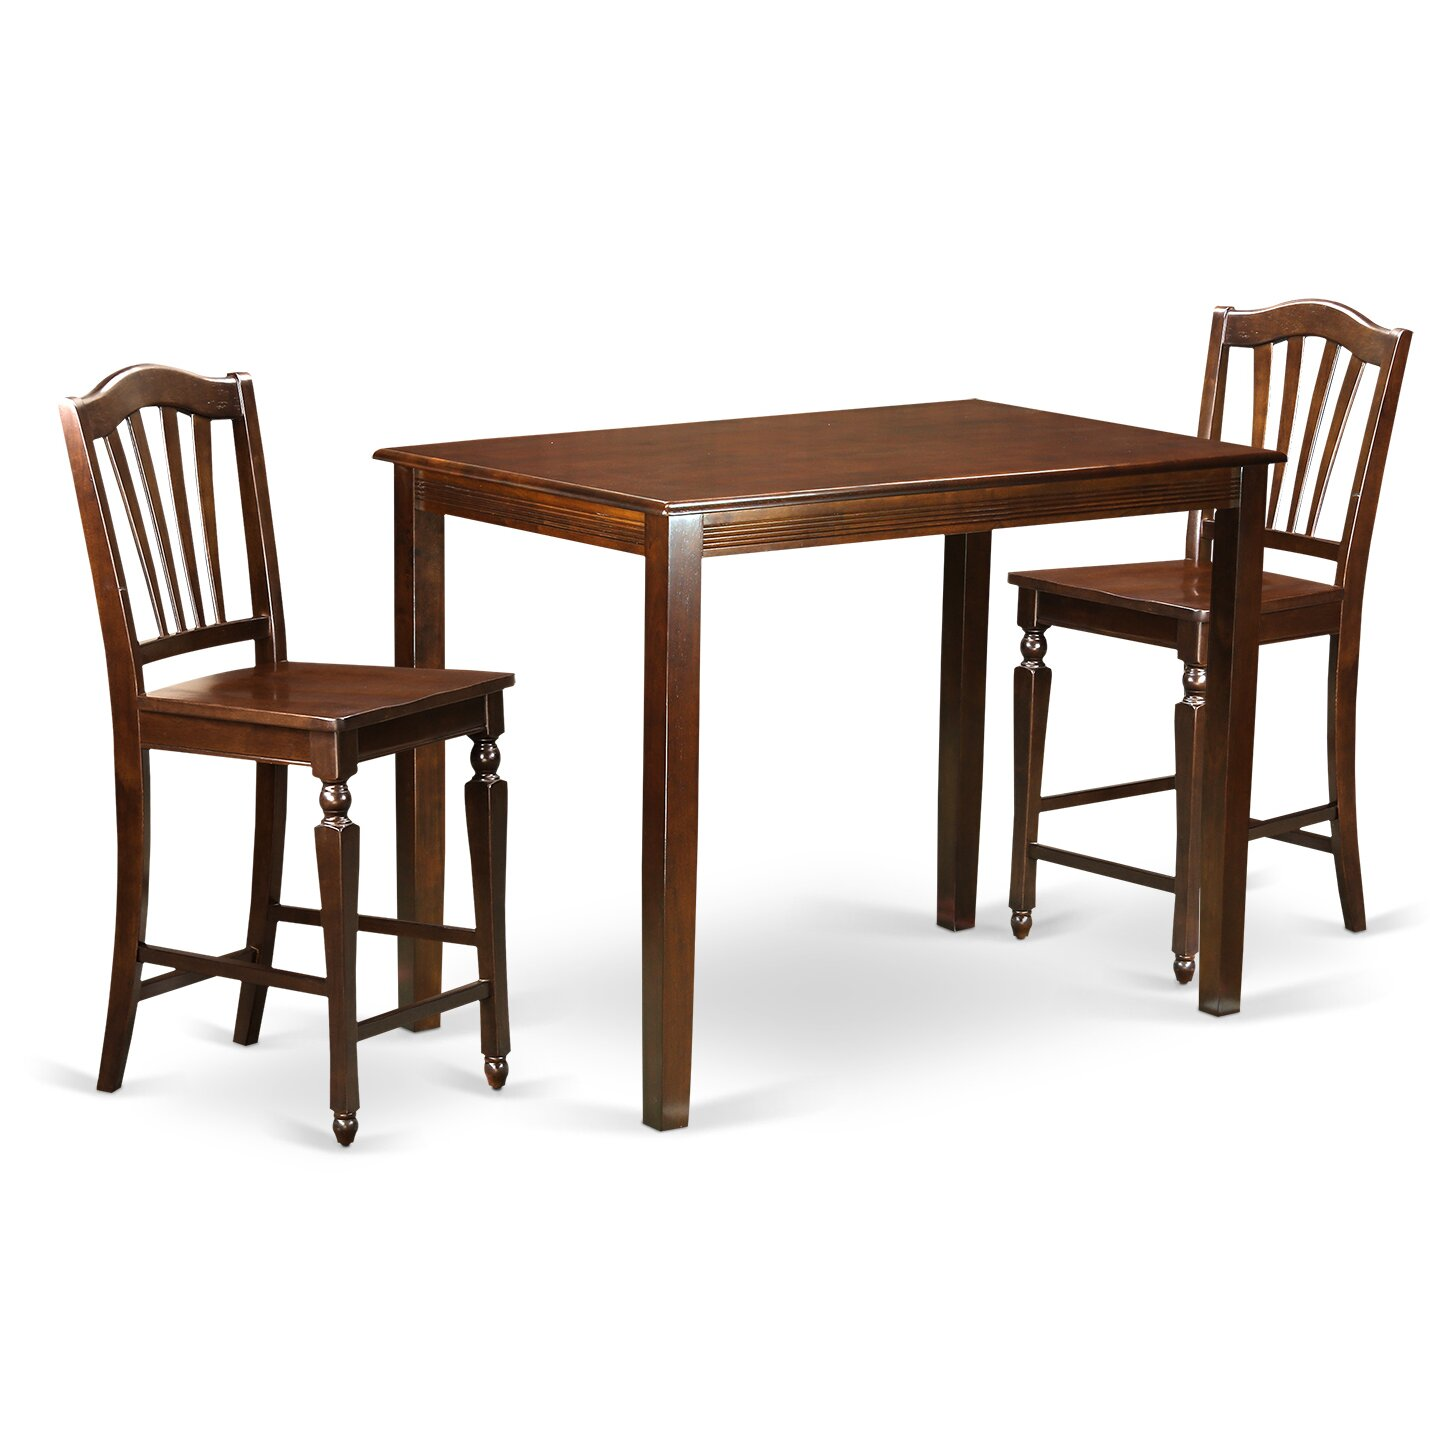 Counter Height Bistro Table Set Small Bar Table And Chairs Small Pub Table For 4 Persons Chairs